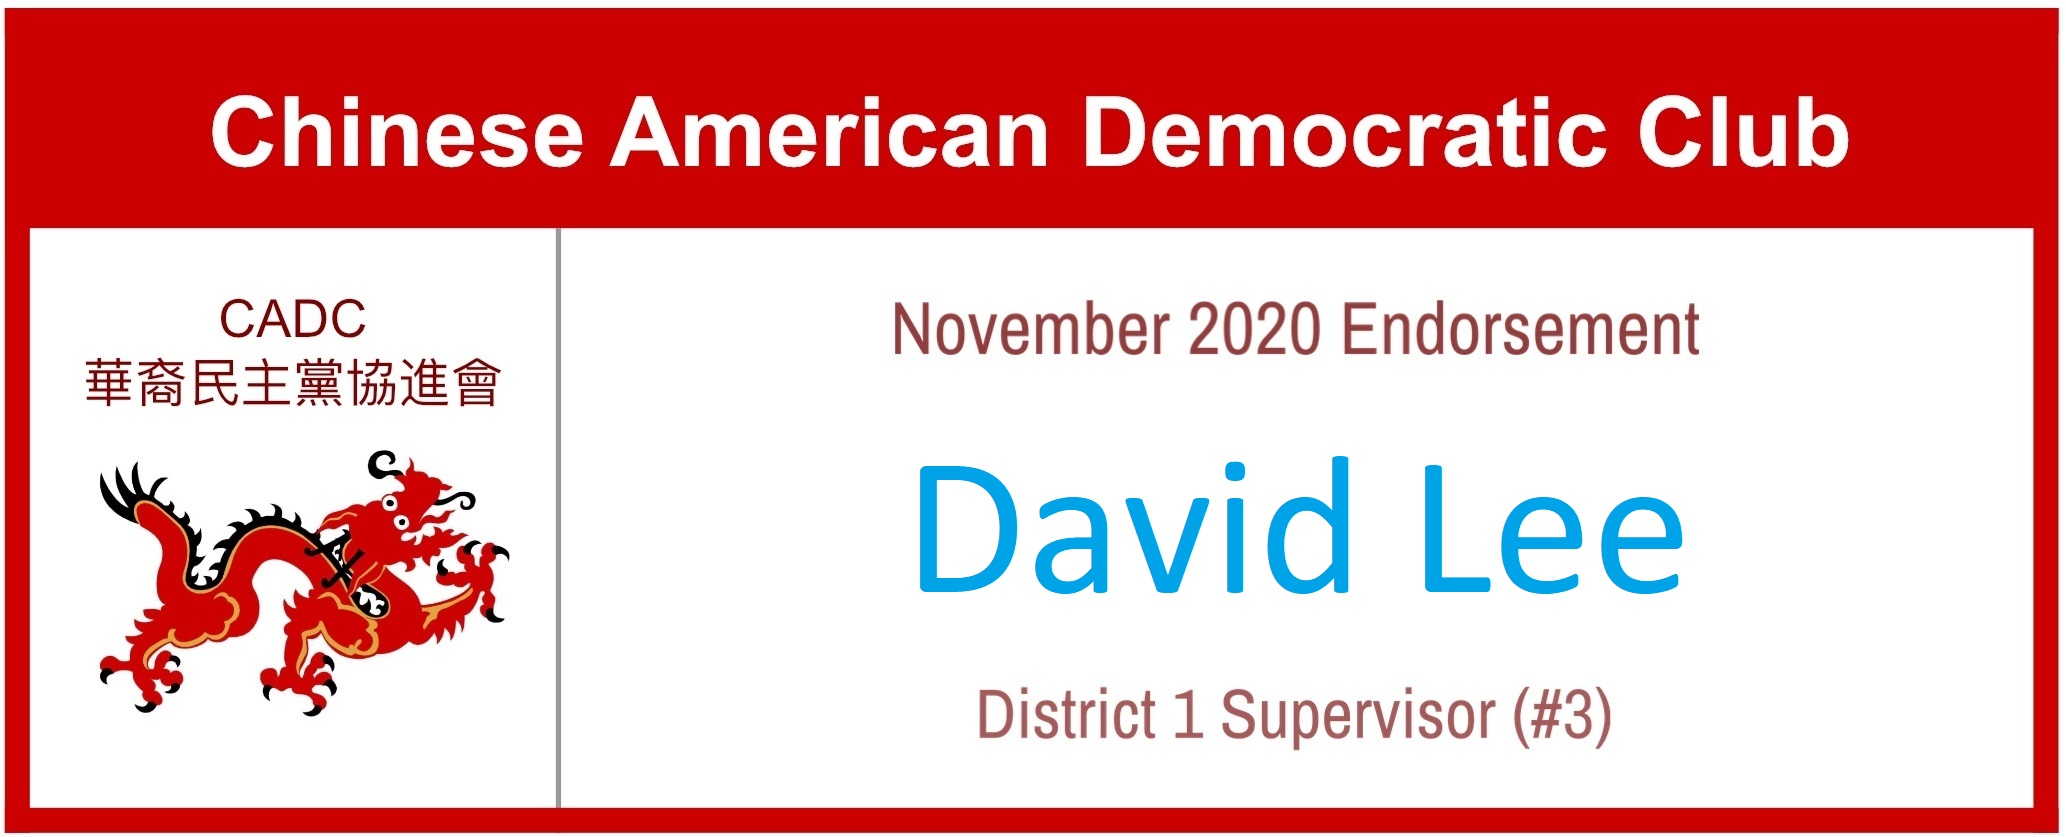 David Lee for District 1 Supervisor - CADC #3 Endorsement November 2020